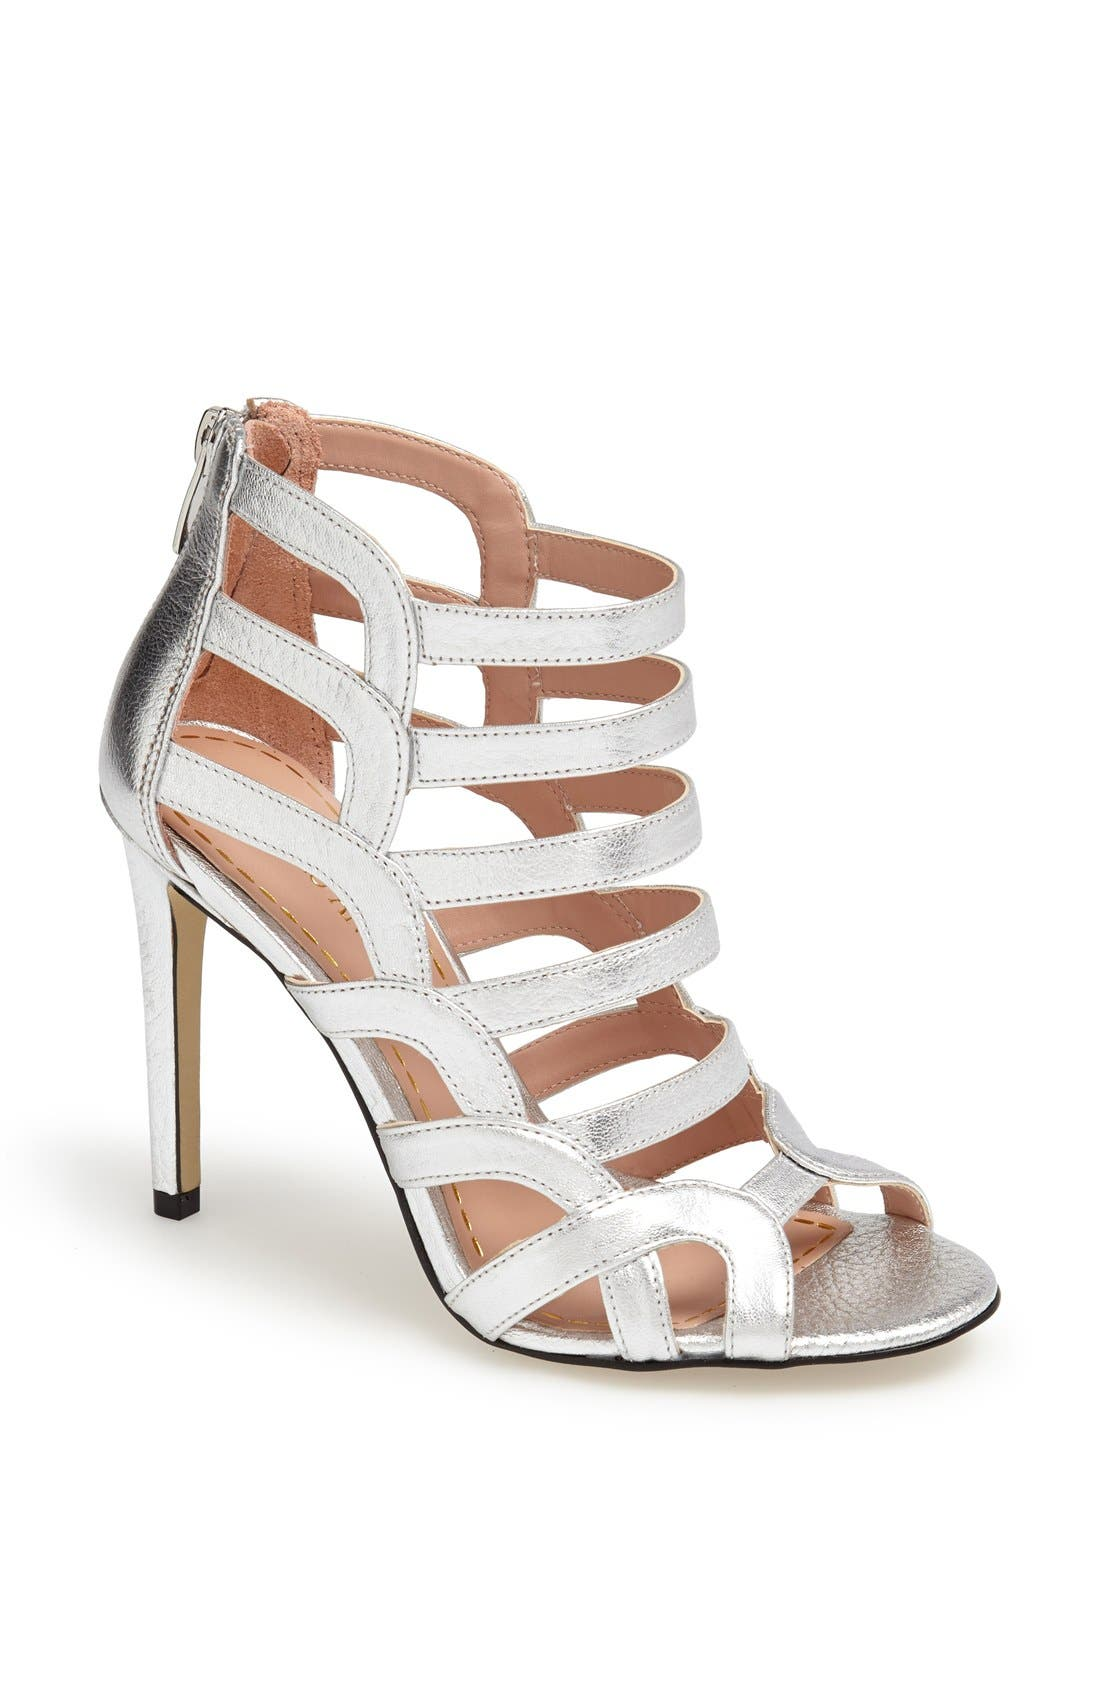 Alternate Image 1 Selected - Enzo Angiolini 'Brien' Sandal